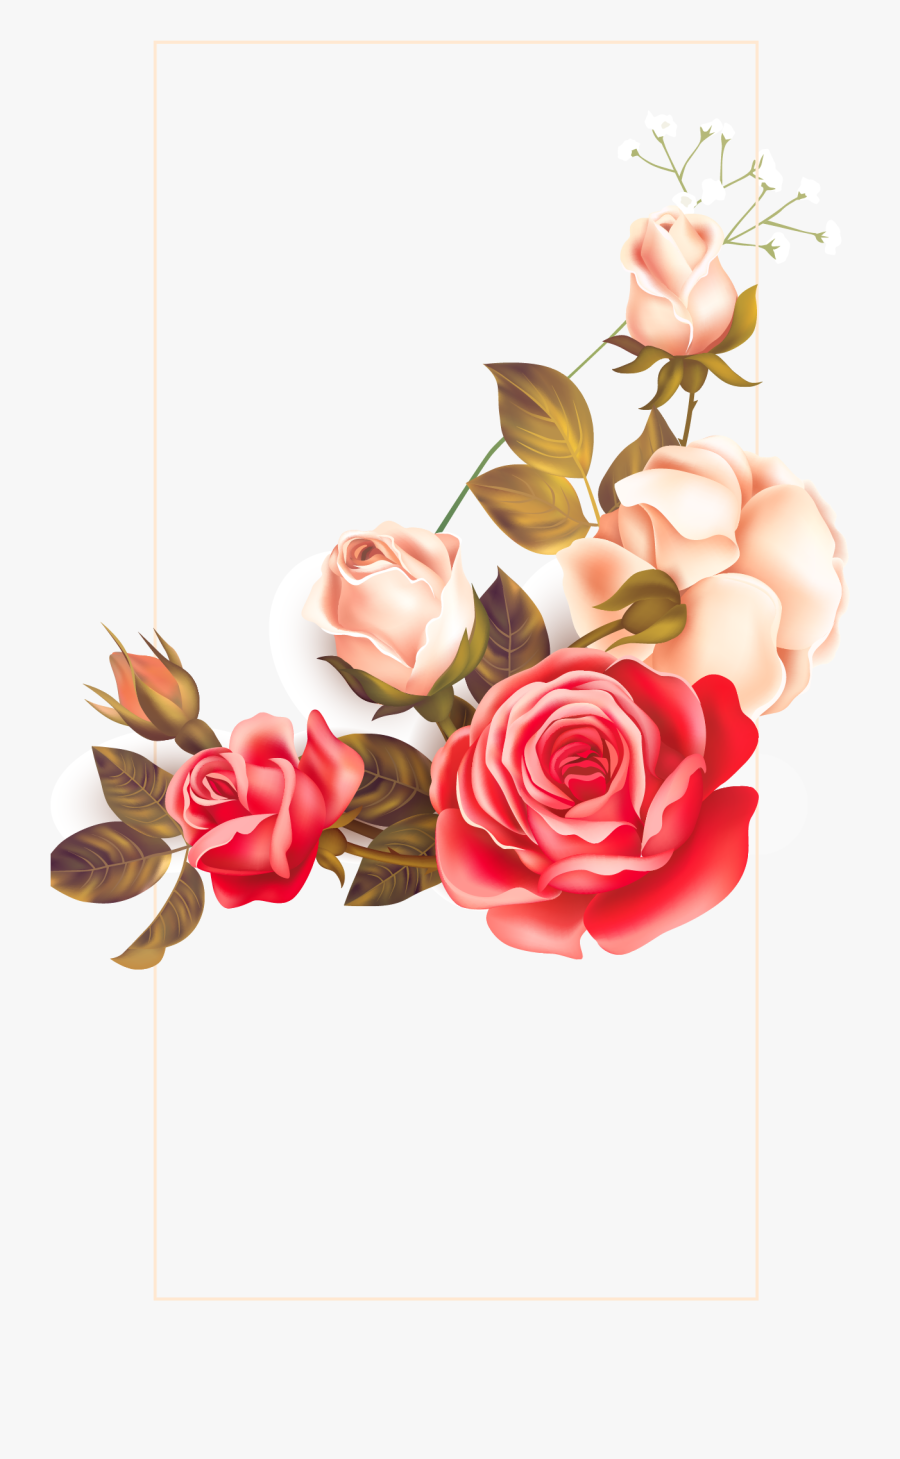 Background Floral Vintage Clipart Images Gallery For.